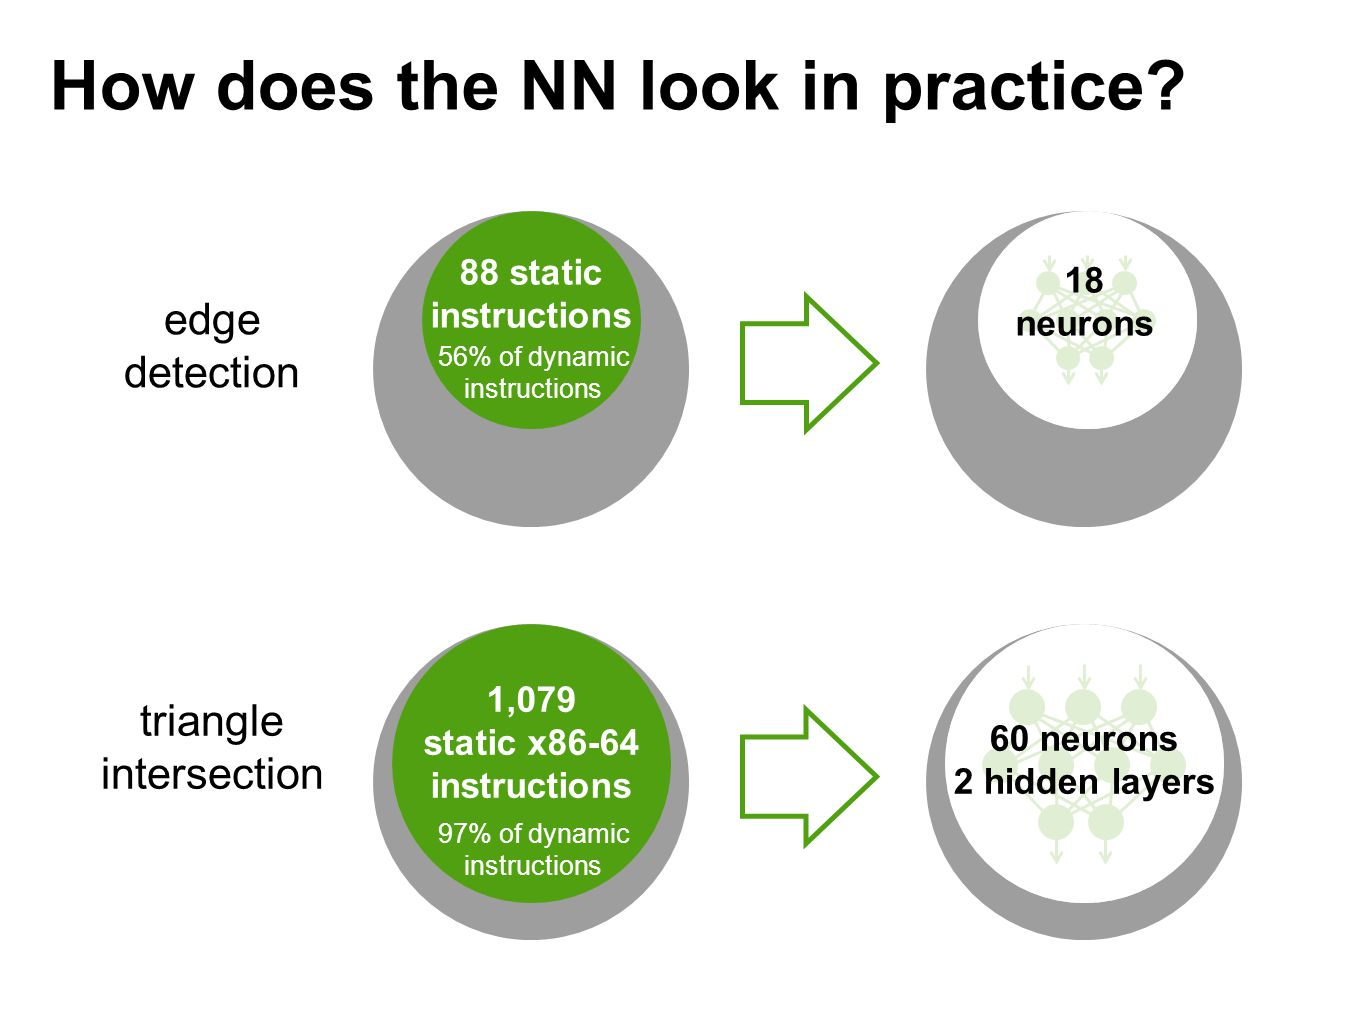 How does the NN look in practice